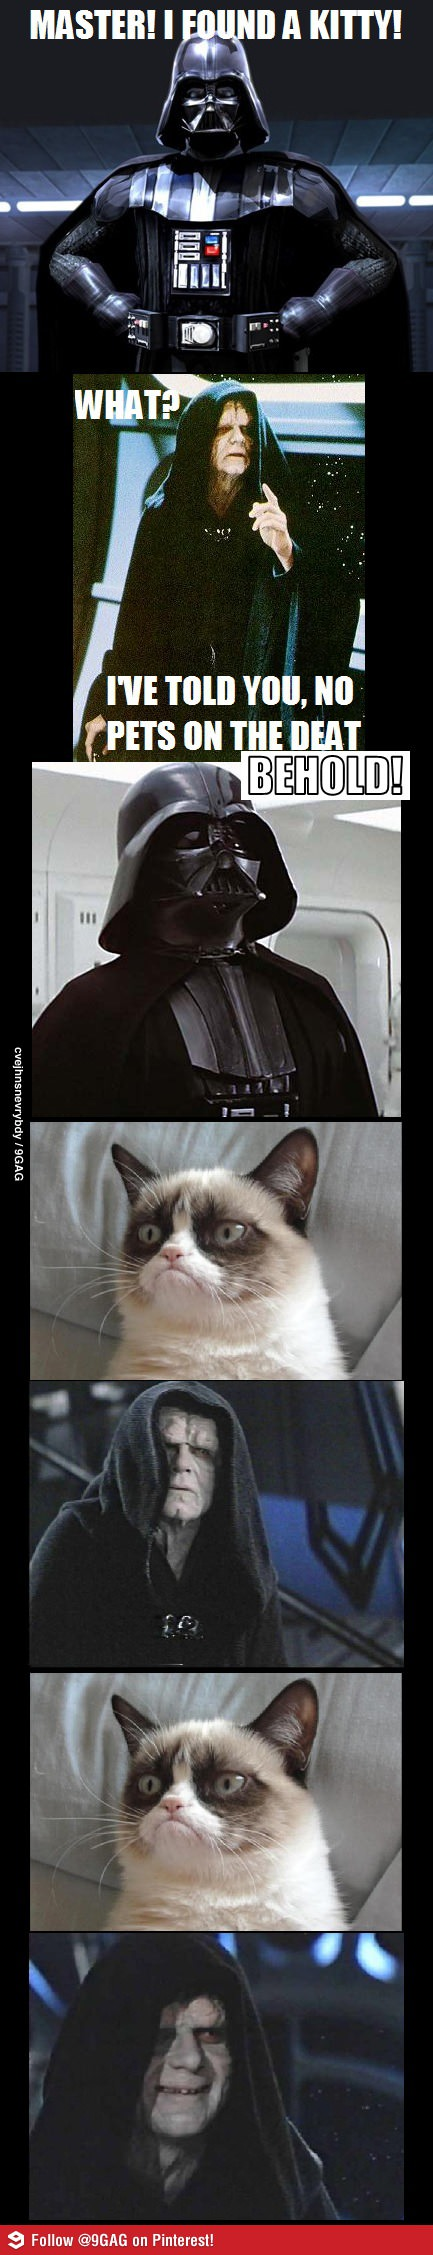 master! I found a kitty, what? I told you no pets on the deat-, behold!, emperor palpatine is happy